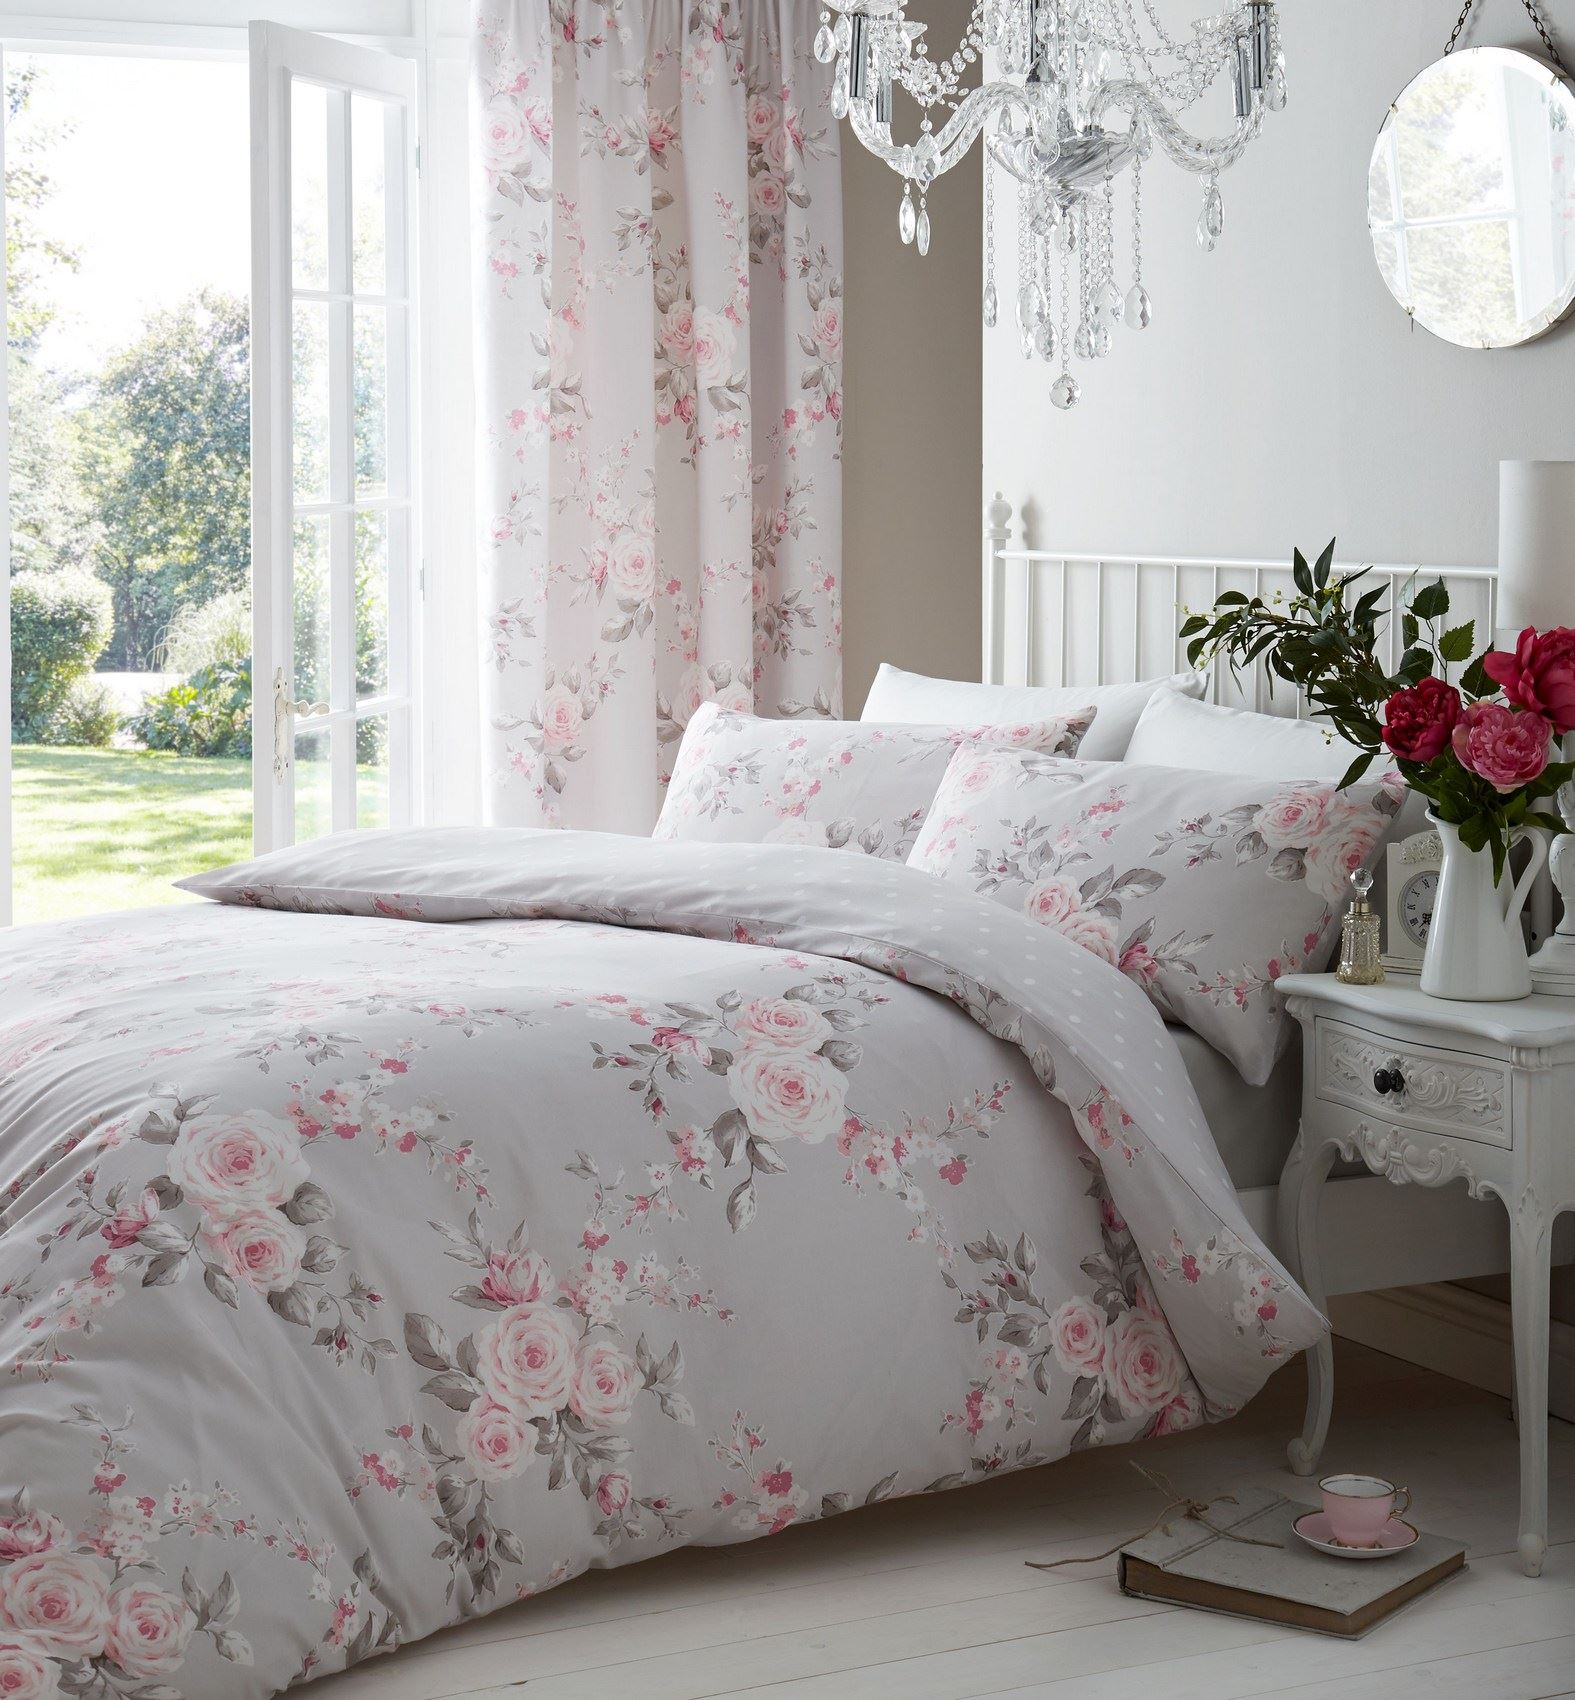 Image of: Shabby Chic Floral Bed Set